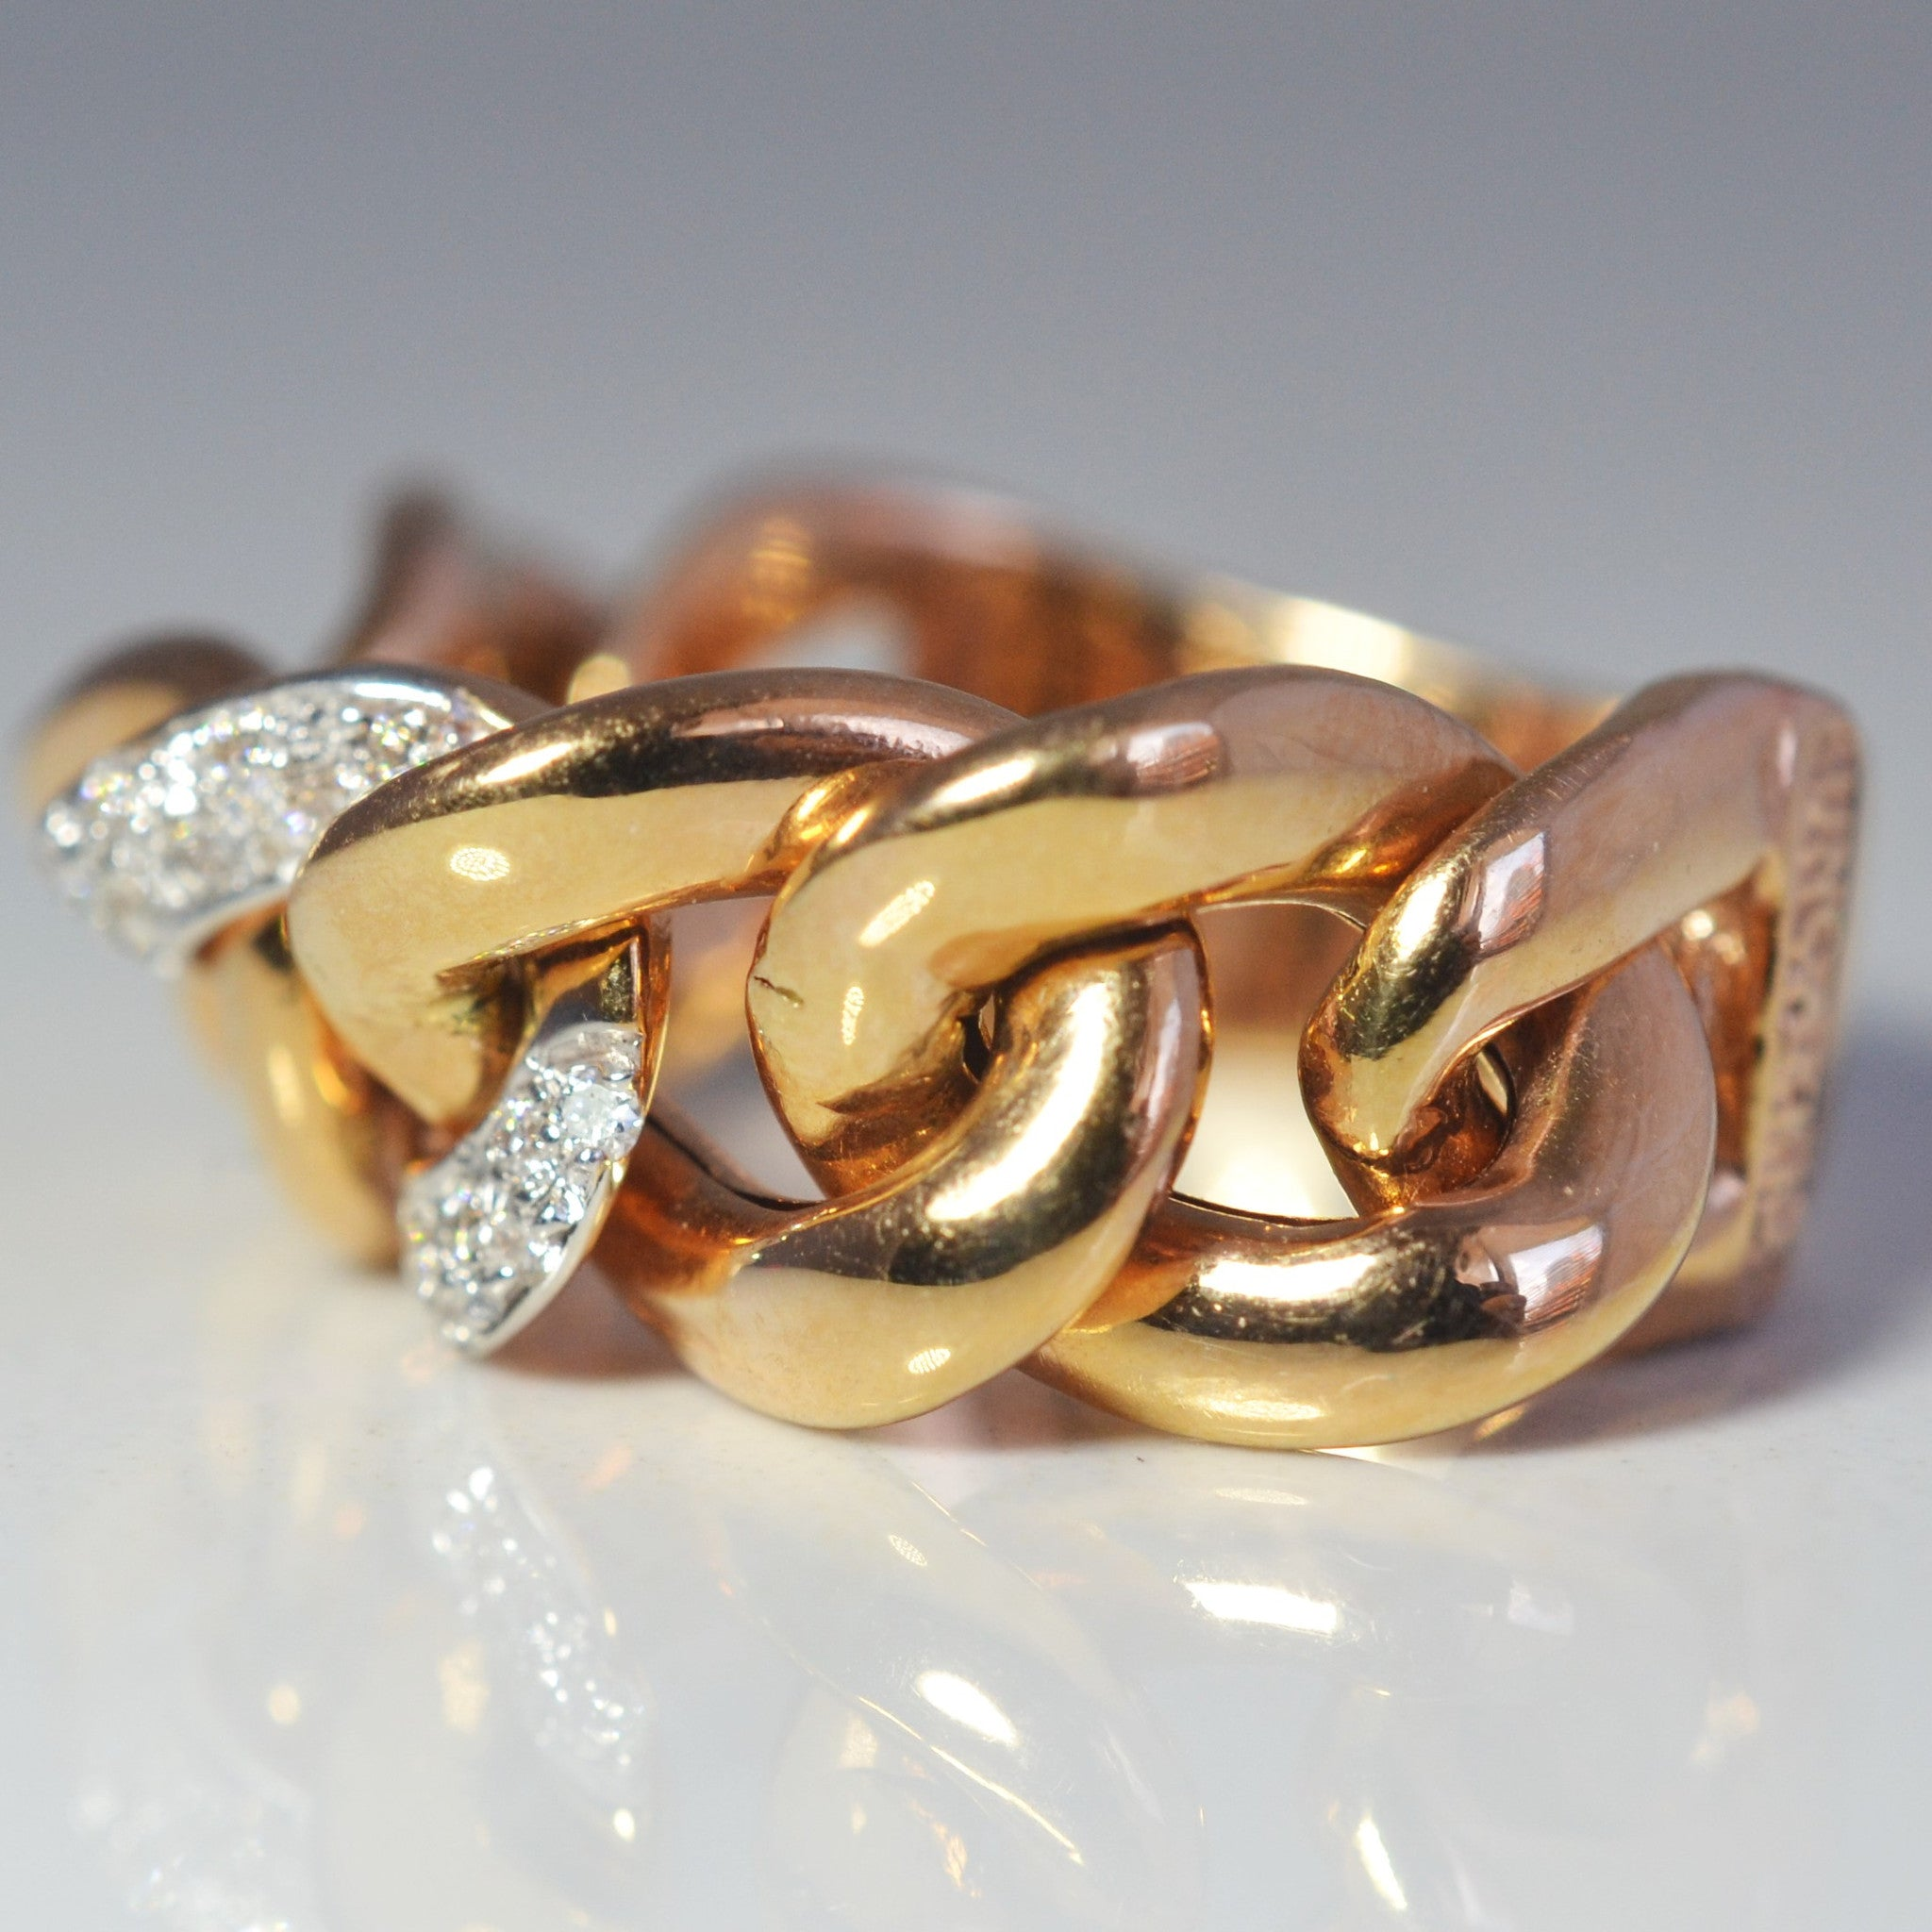 'UnoAErre' Chainlink Rose Gold Diamond Ring | 0.22ctw | SZ 8.75 |